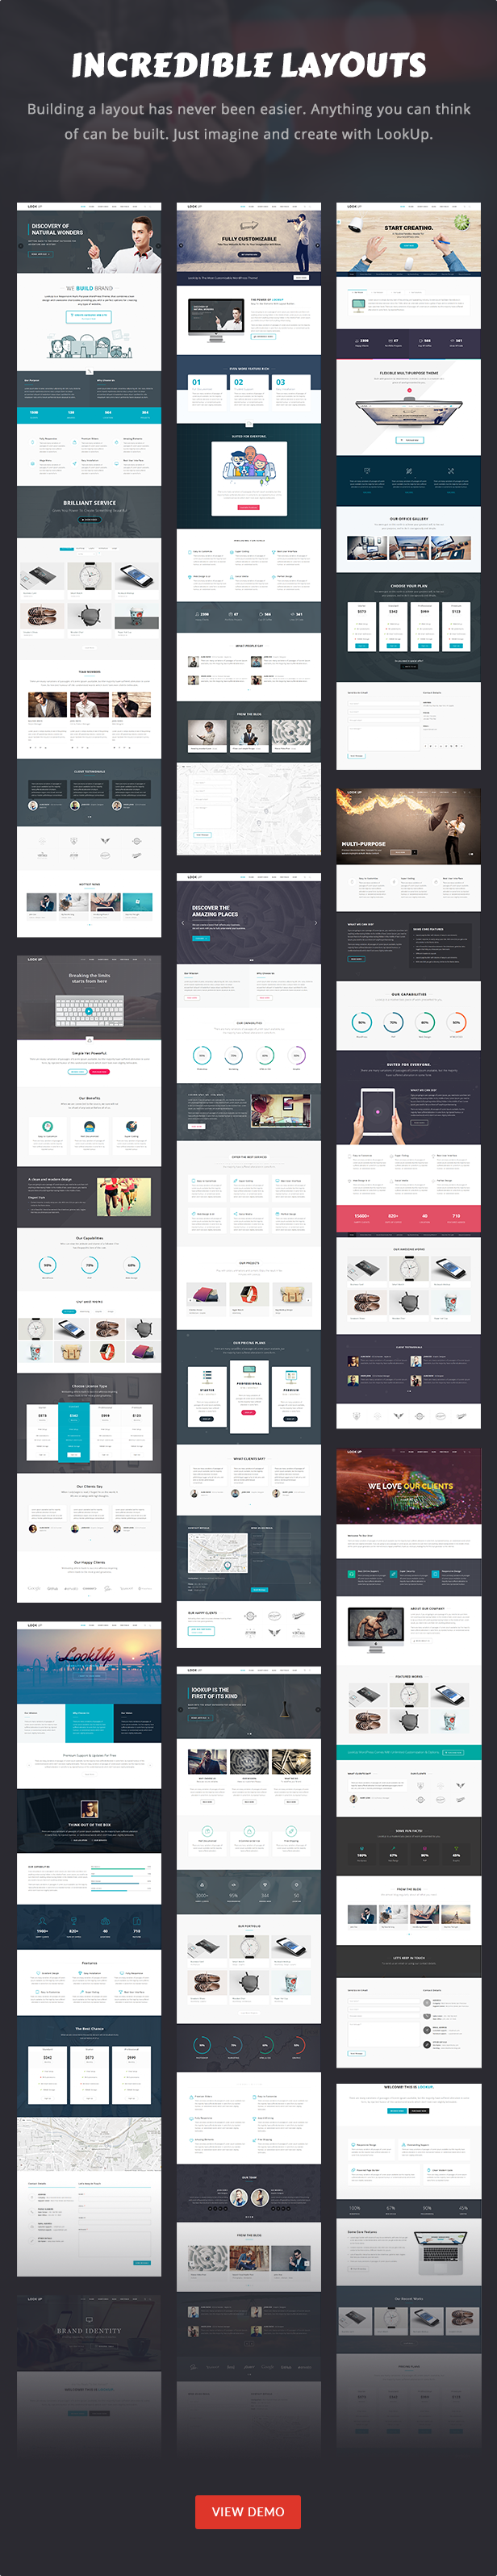 LookUp - Responsive Multi-Purpose HTML5 Template - 1